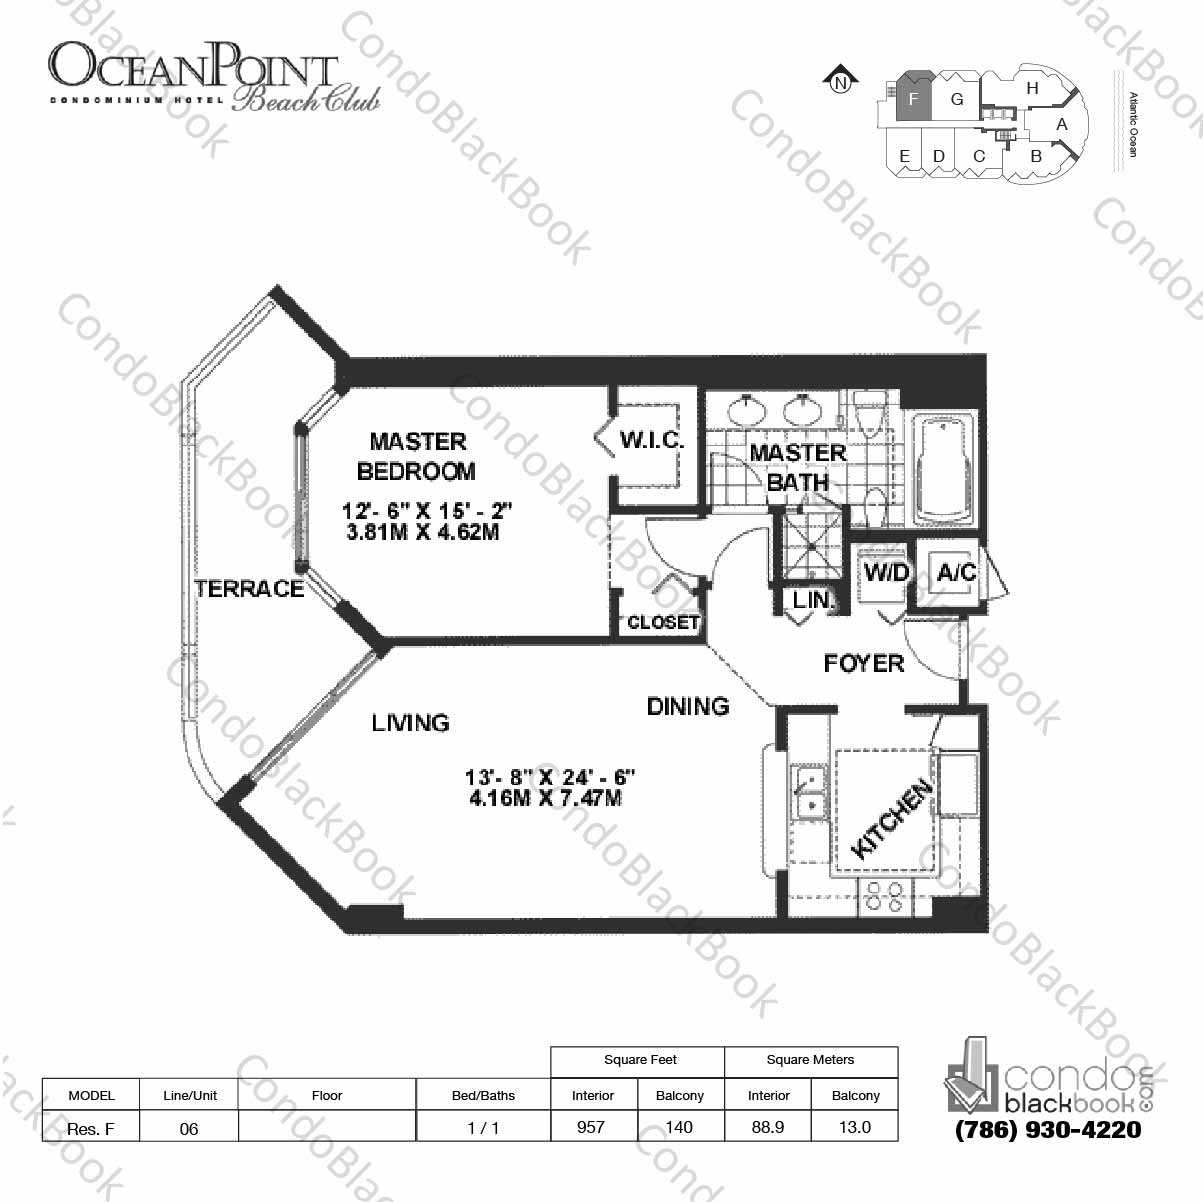 Floor plan for Ocean Point Beach Club Sunny Isles Beach, model Res. F, line 06, 1 / 1 bedrooms, 957 sq ft